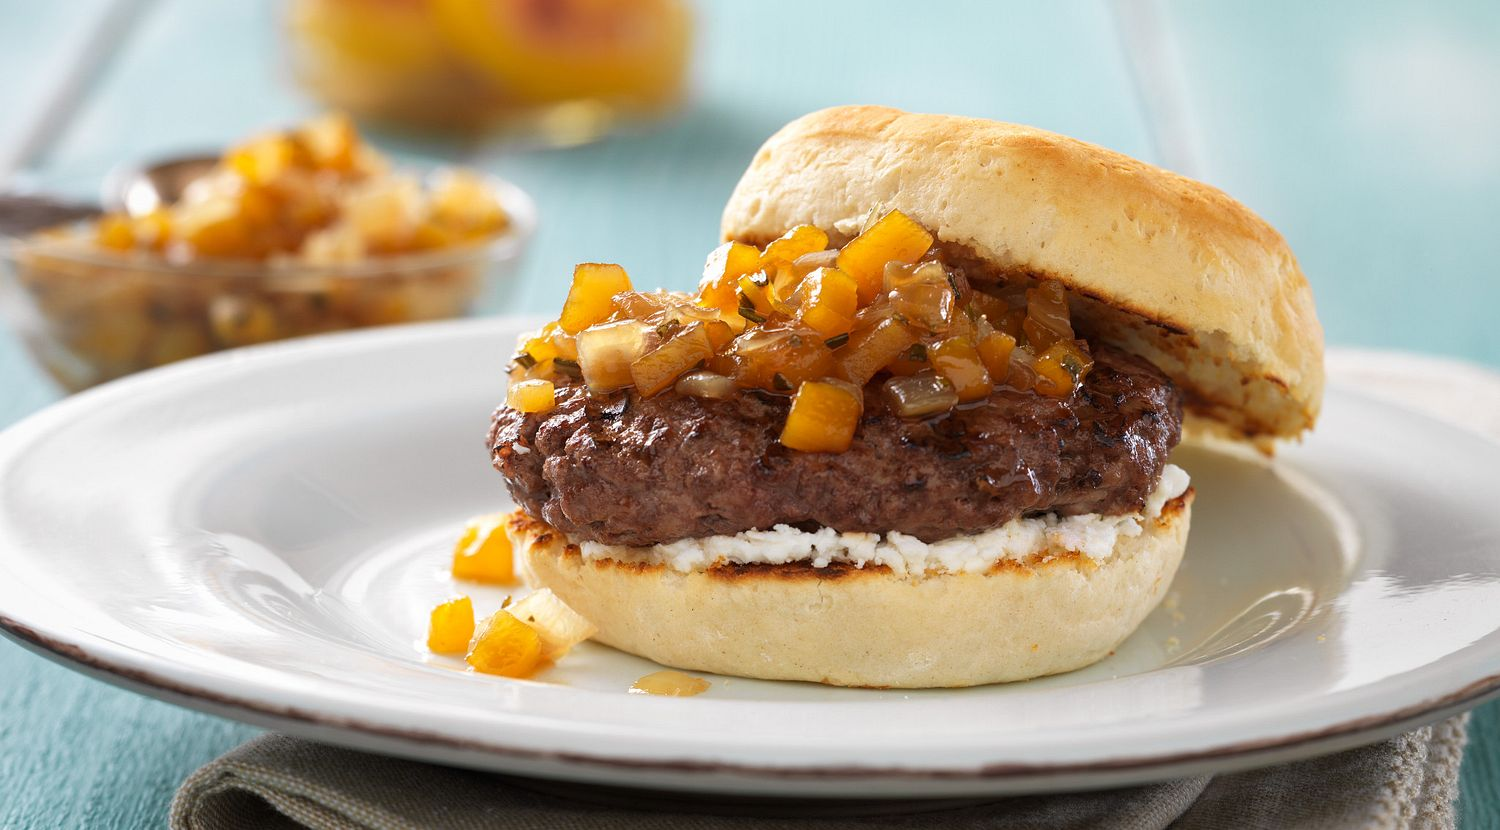 Old South Burgers with Peach Compote